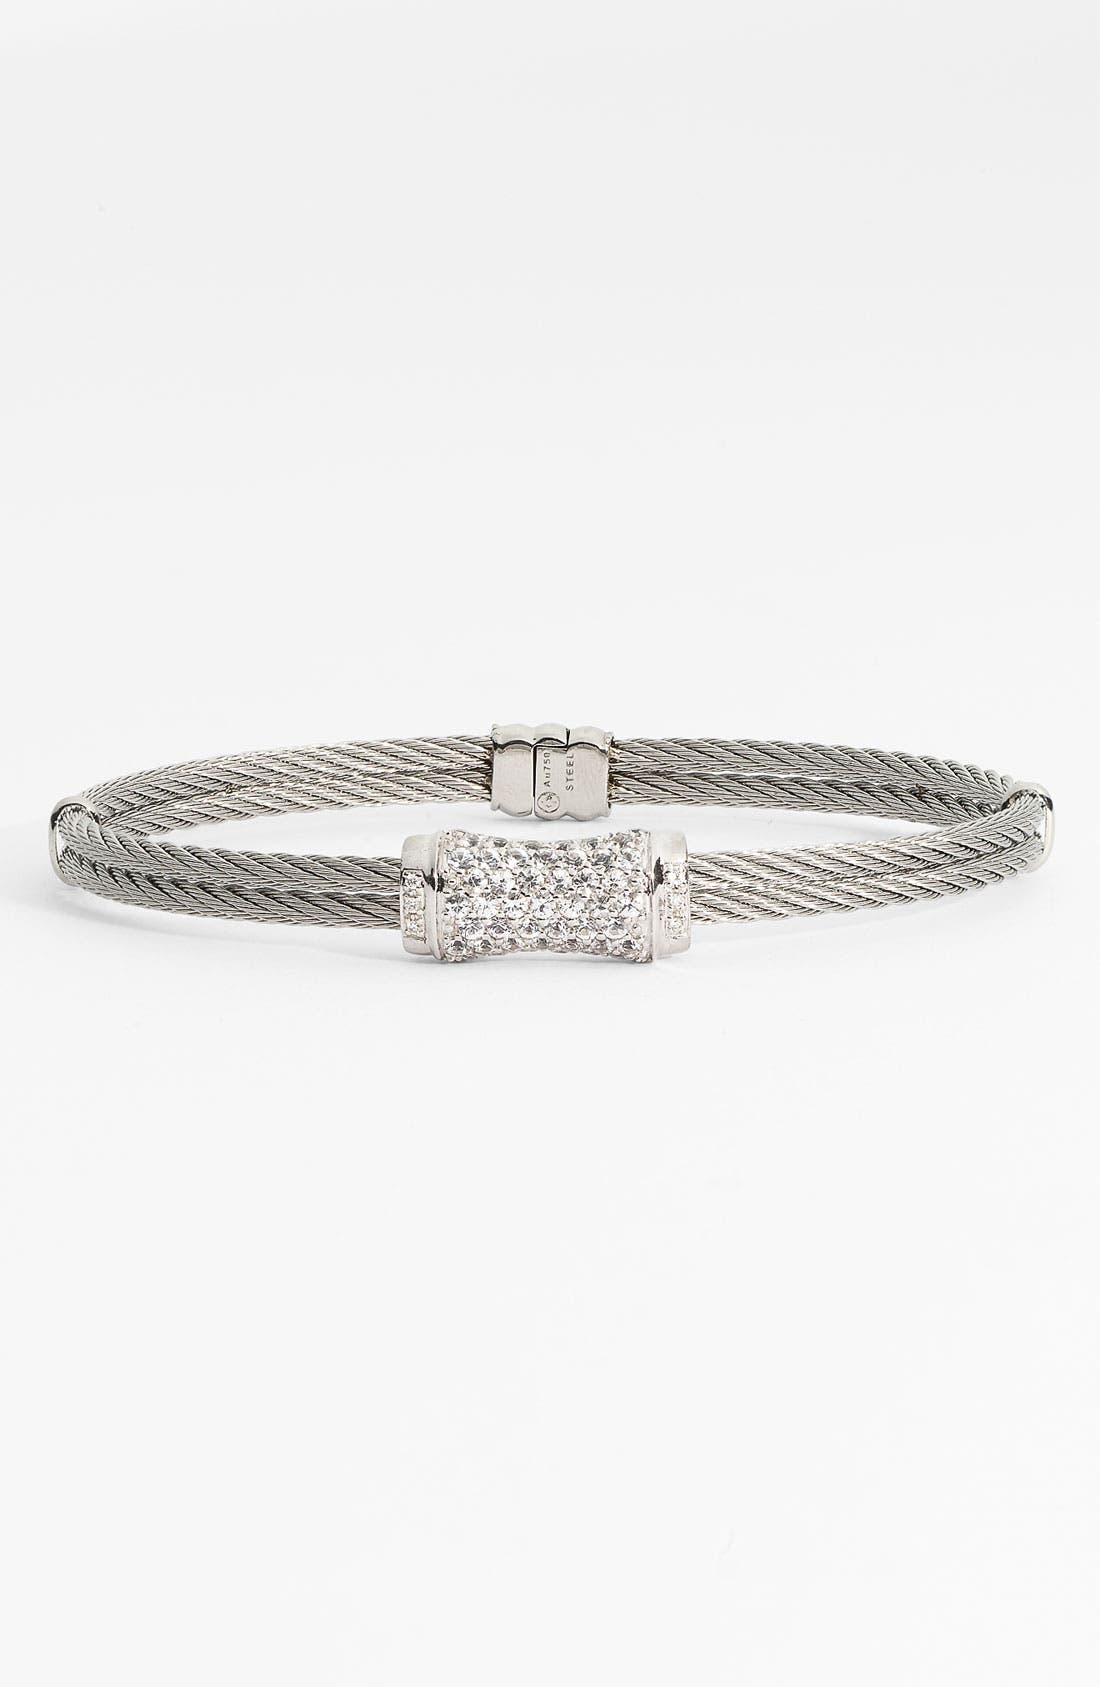 Alternate Image 1 Selected - ALOR® White Sapphire Station Cable Bangle (Nordstrom Exclusive)